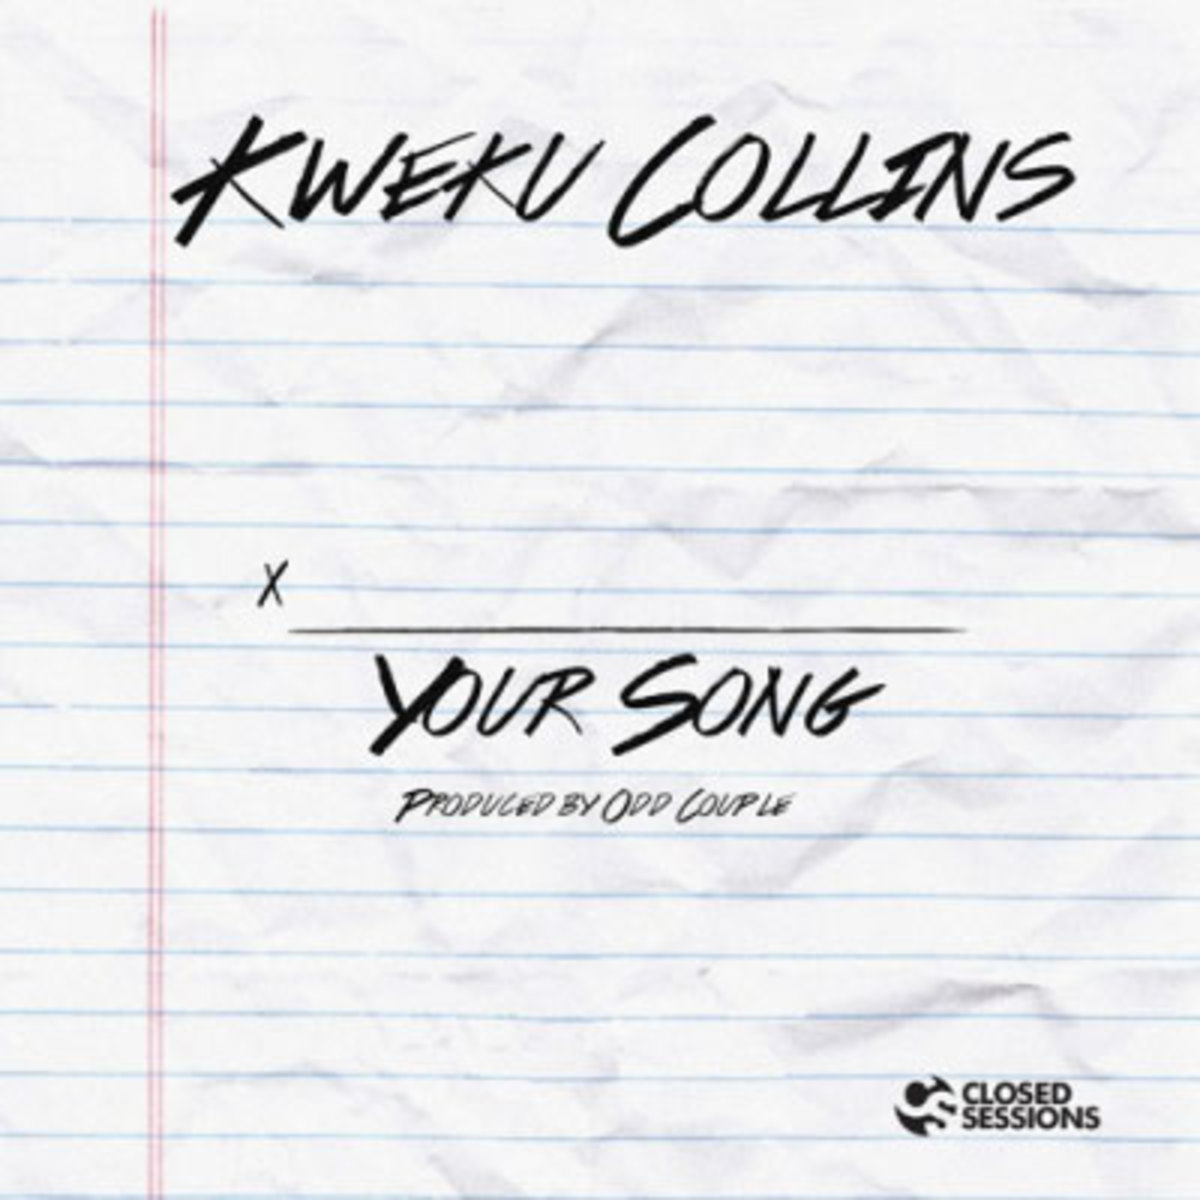 kweku-collins-your-song.jpg